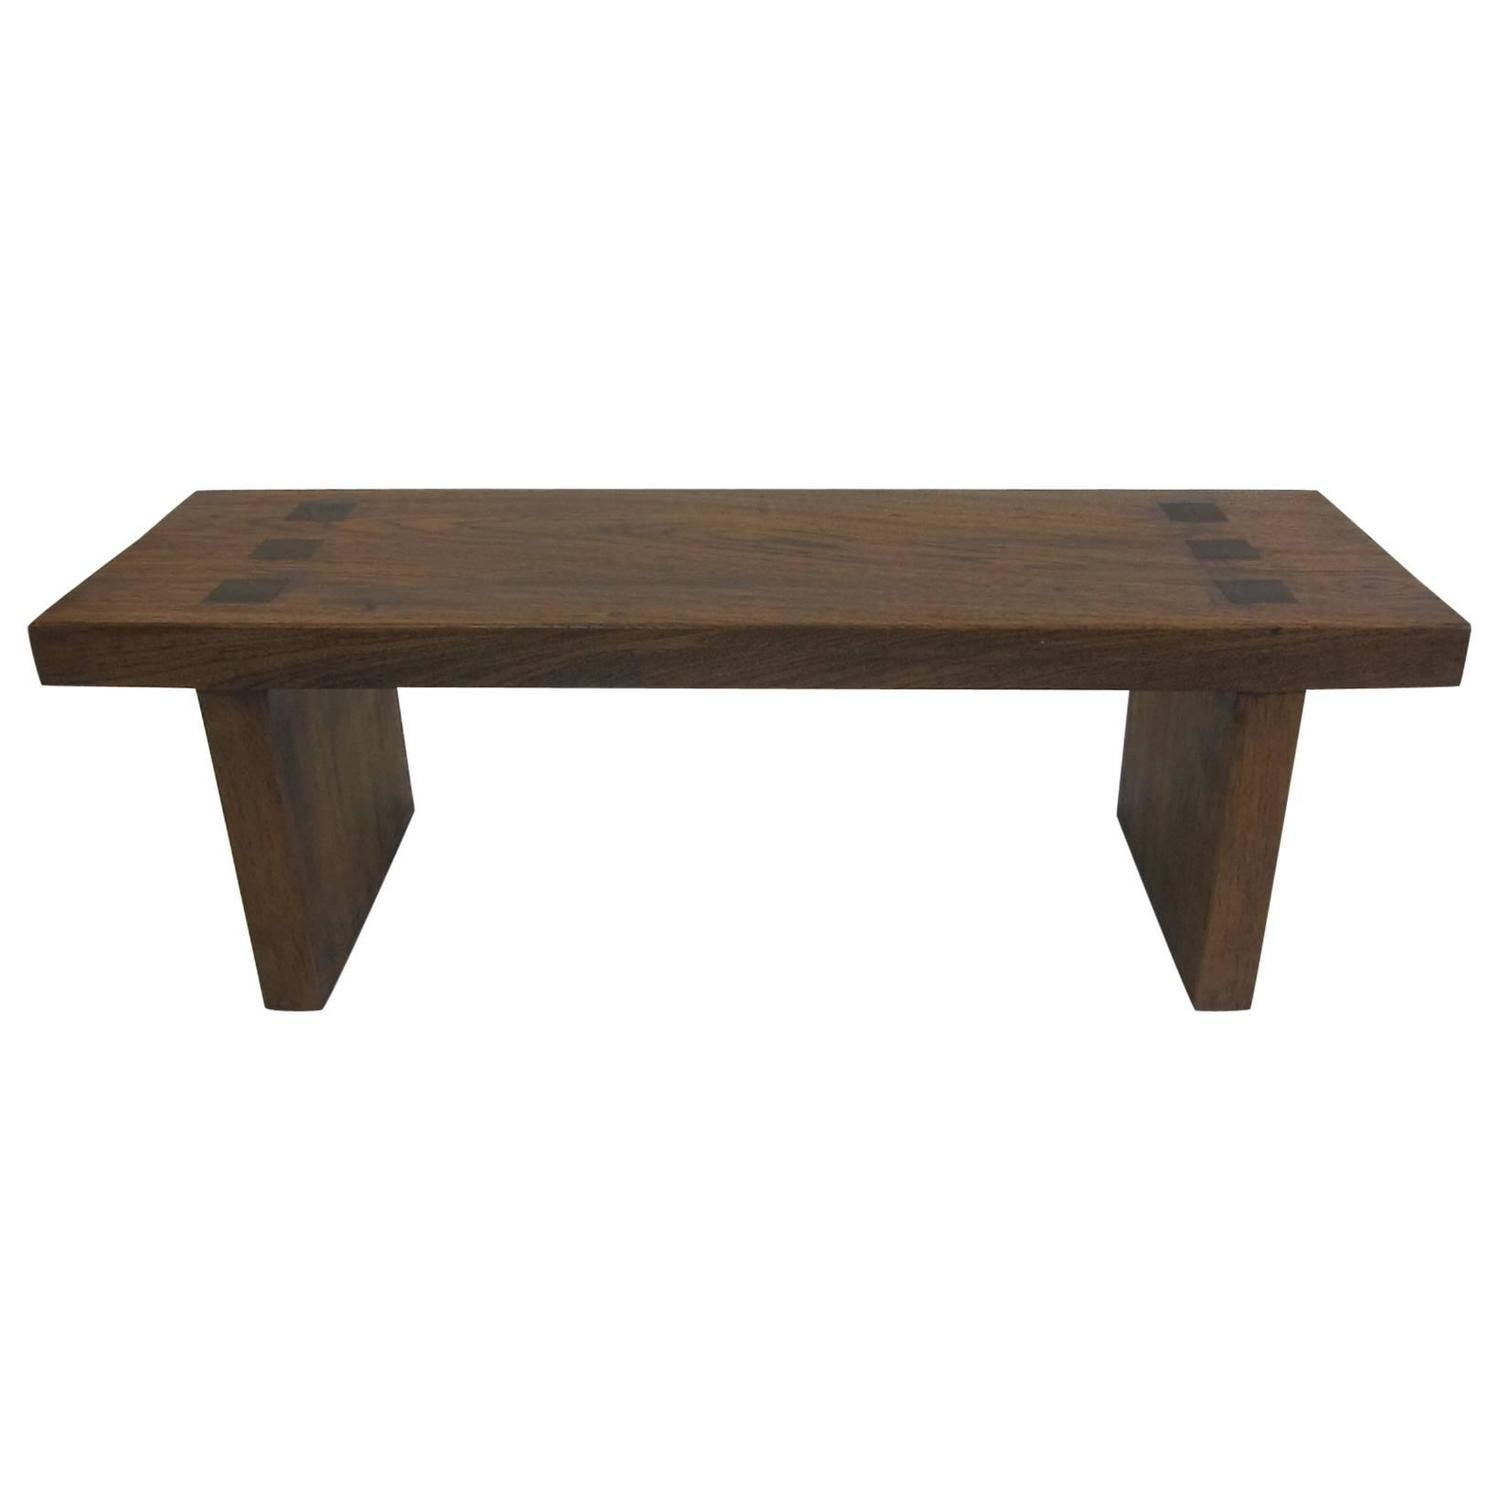 Teak Low Bench Table For Sale At 1stdibs